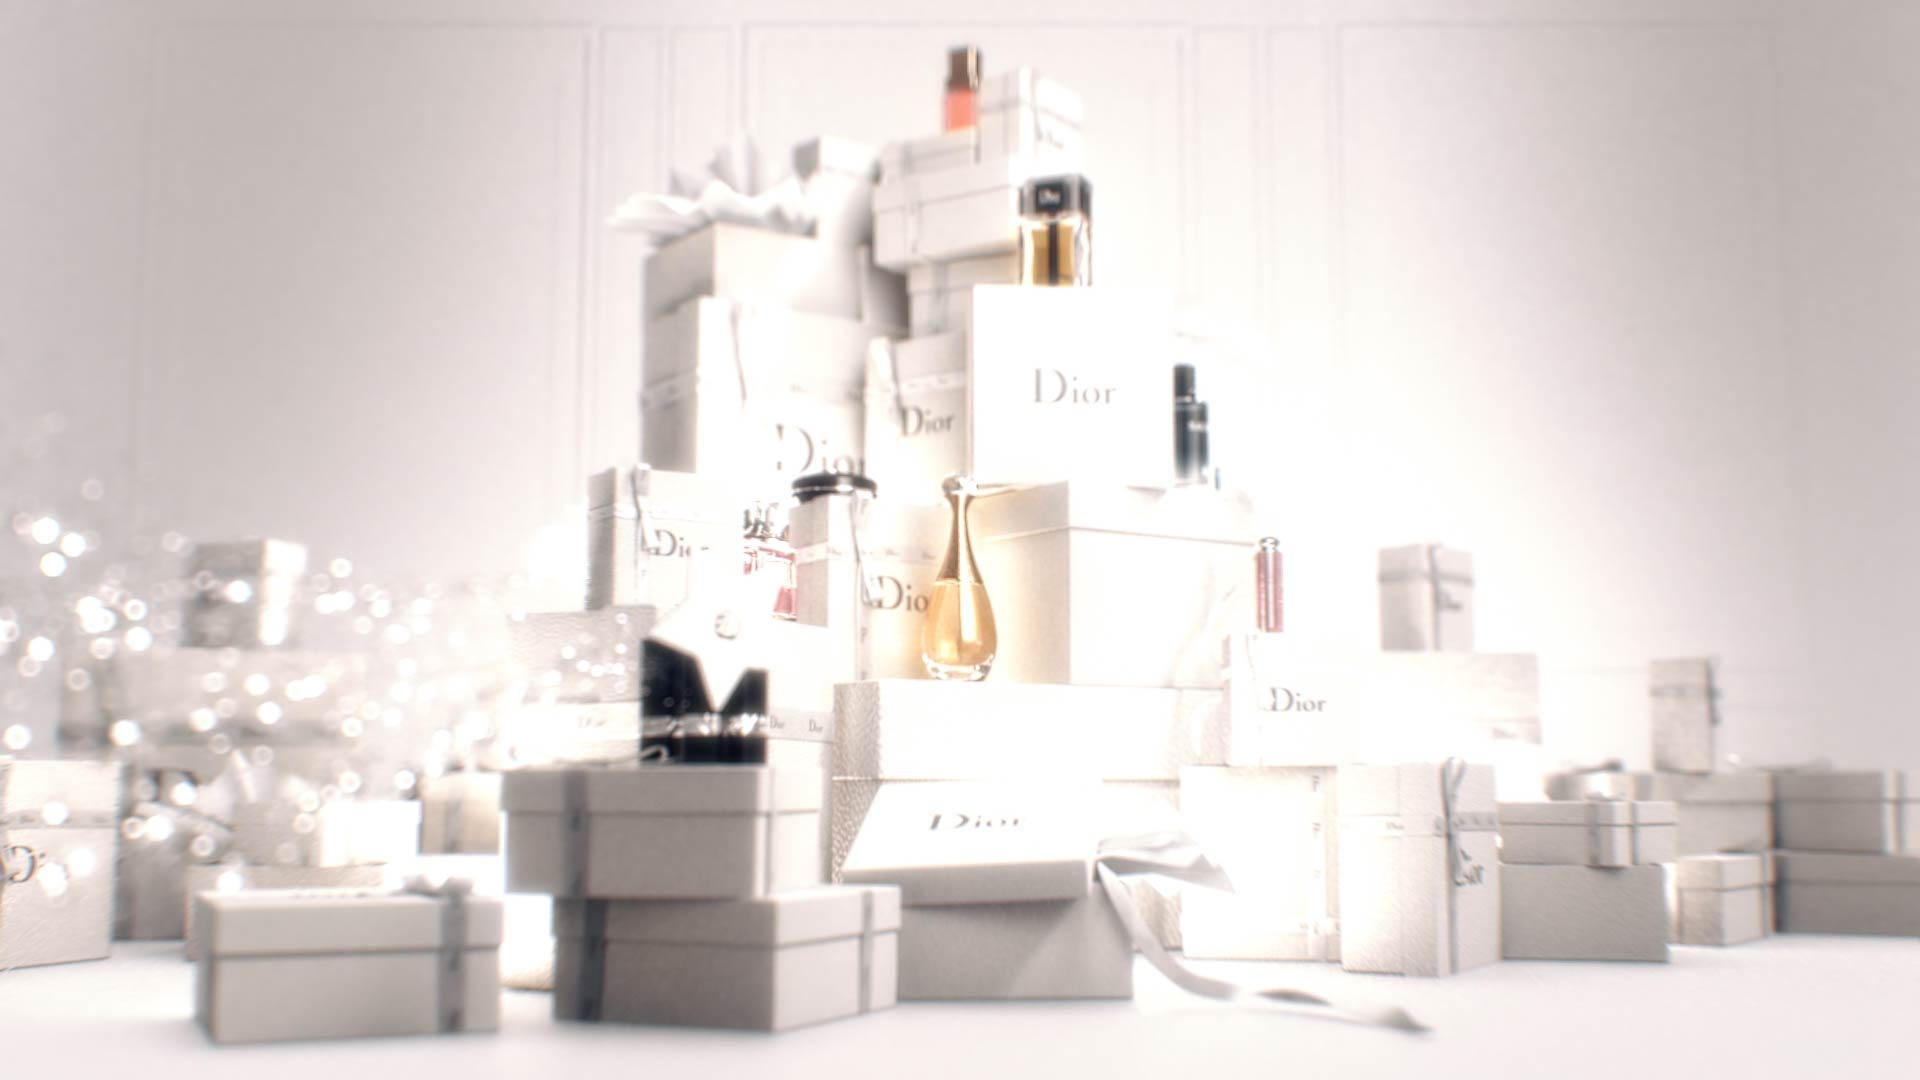 3D Dior products on top of Gift boxes